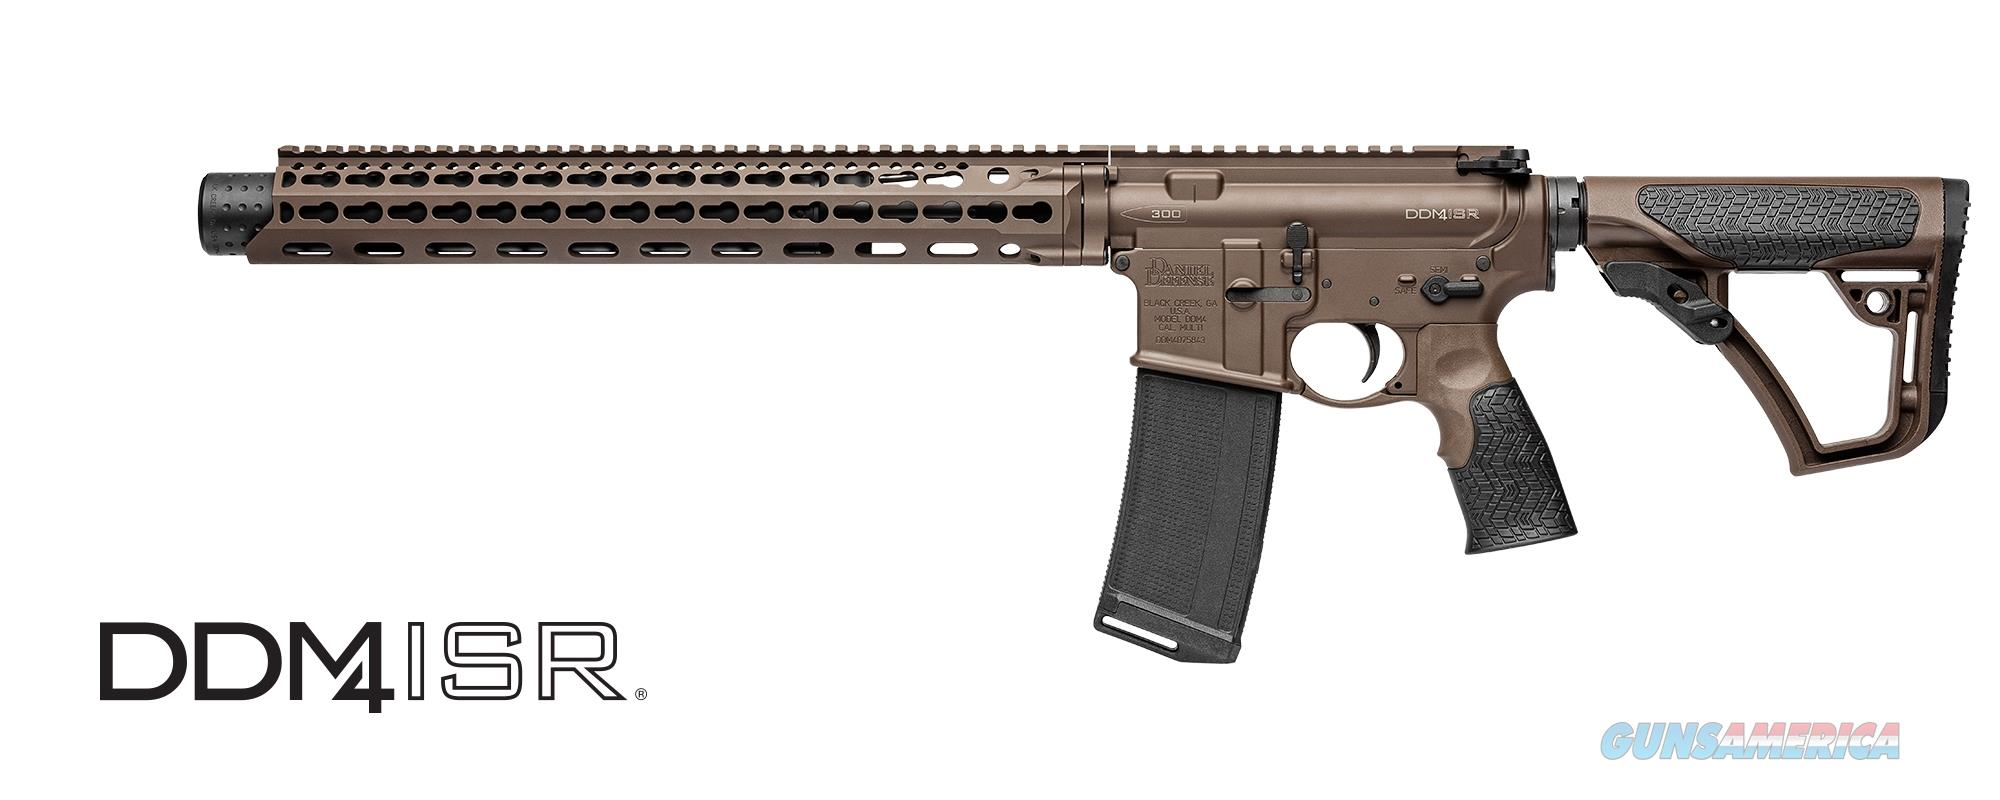 DANIELS DEFENSE DDM4 ISR CLASS 3 300 BLACKOUT!!!  Guns > Rifles > Daniel Defense > Complete Rifles